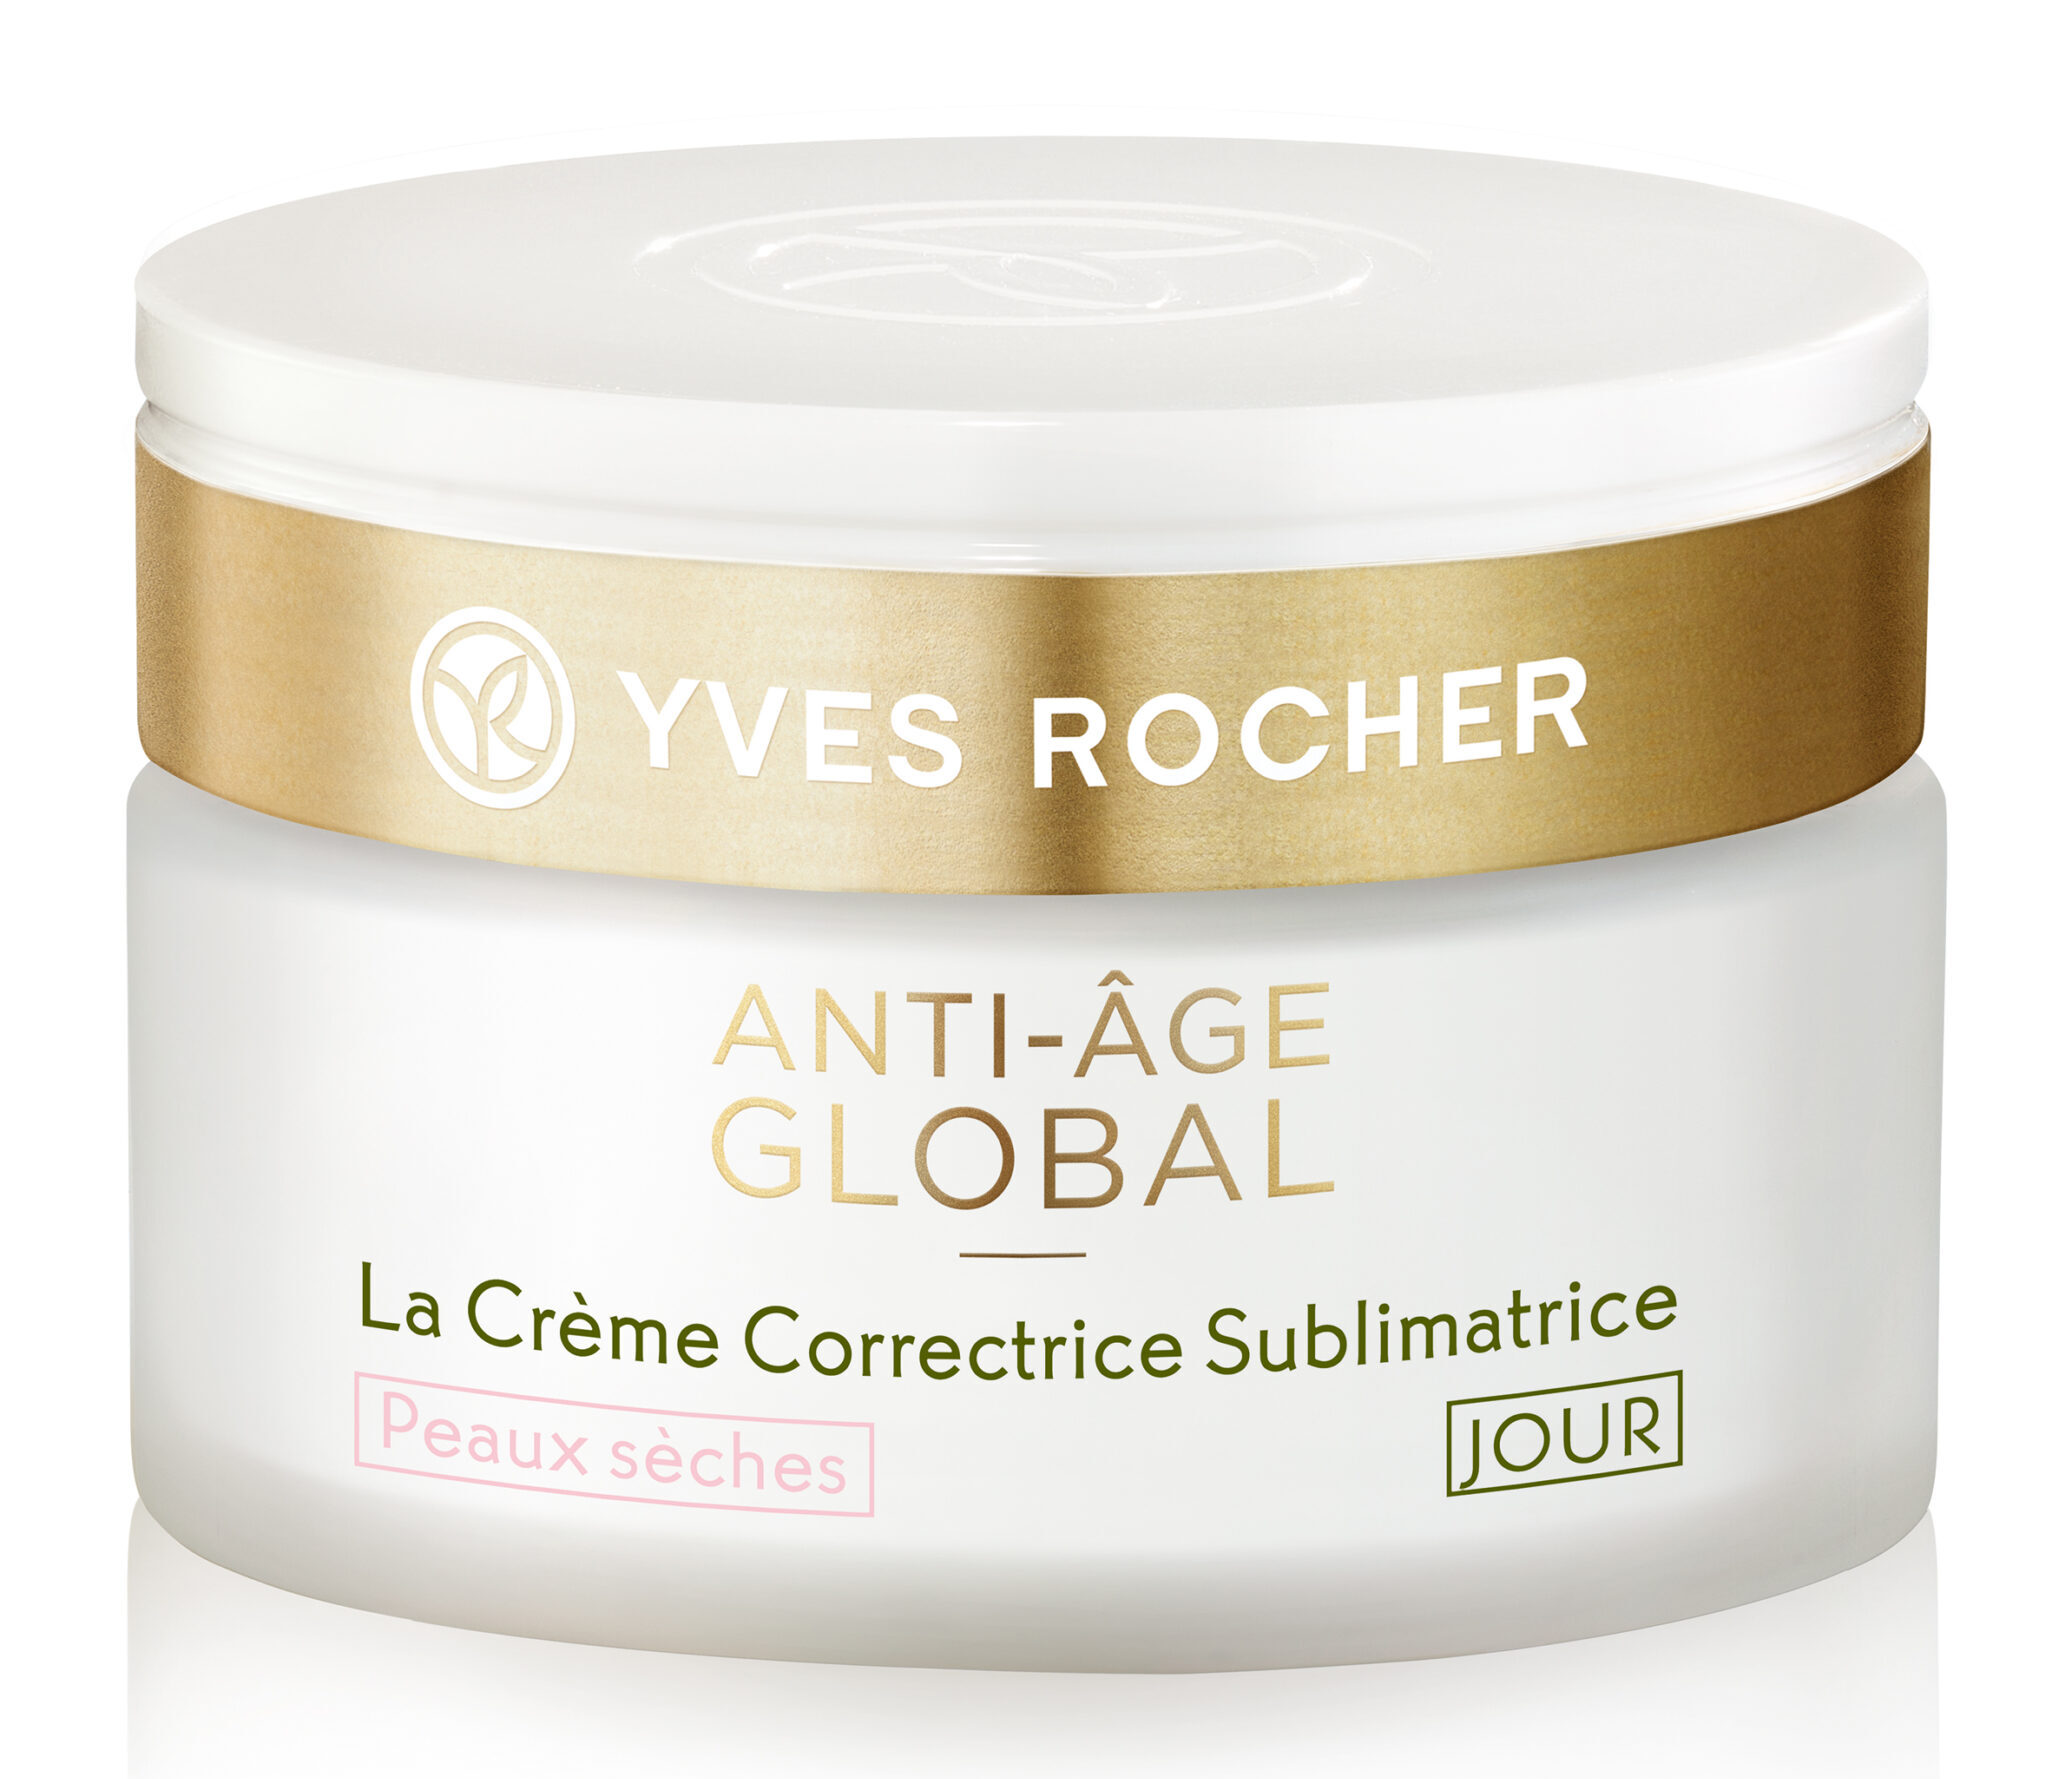 Yves Rocher,Anti-age Global, dagcreme, natcreme, serum, julekalender, 2019